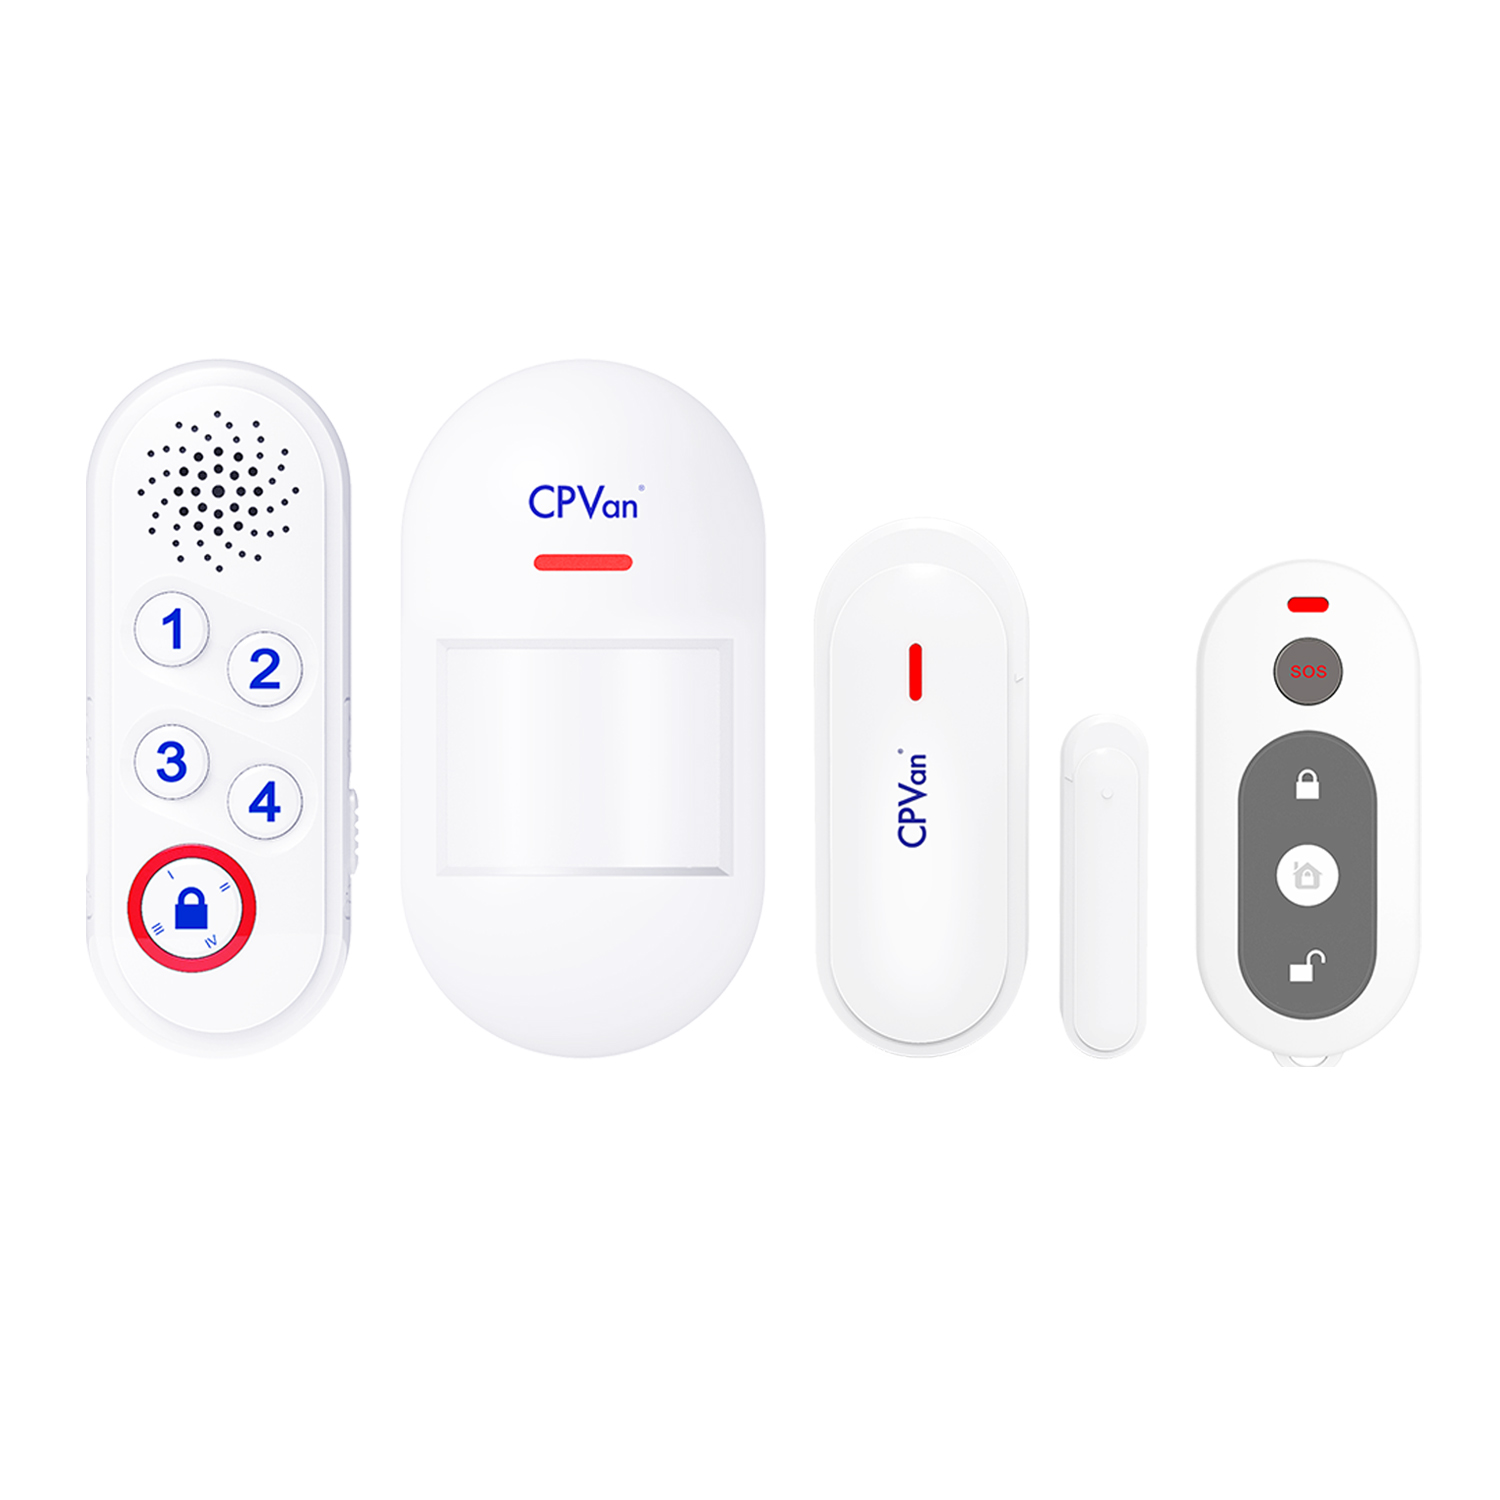 CPVan Home Alarm System Wireless Burglar Alarm System with Siren unit 1 Window Door Sensor, 1 PIR Motion Sensor, remote control